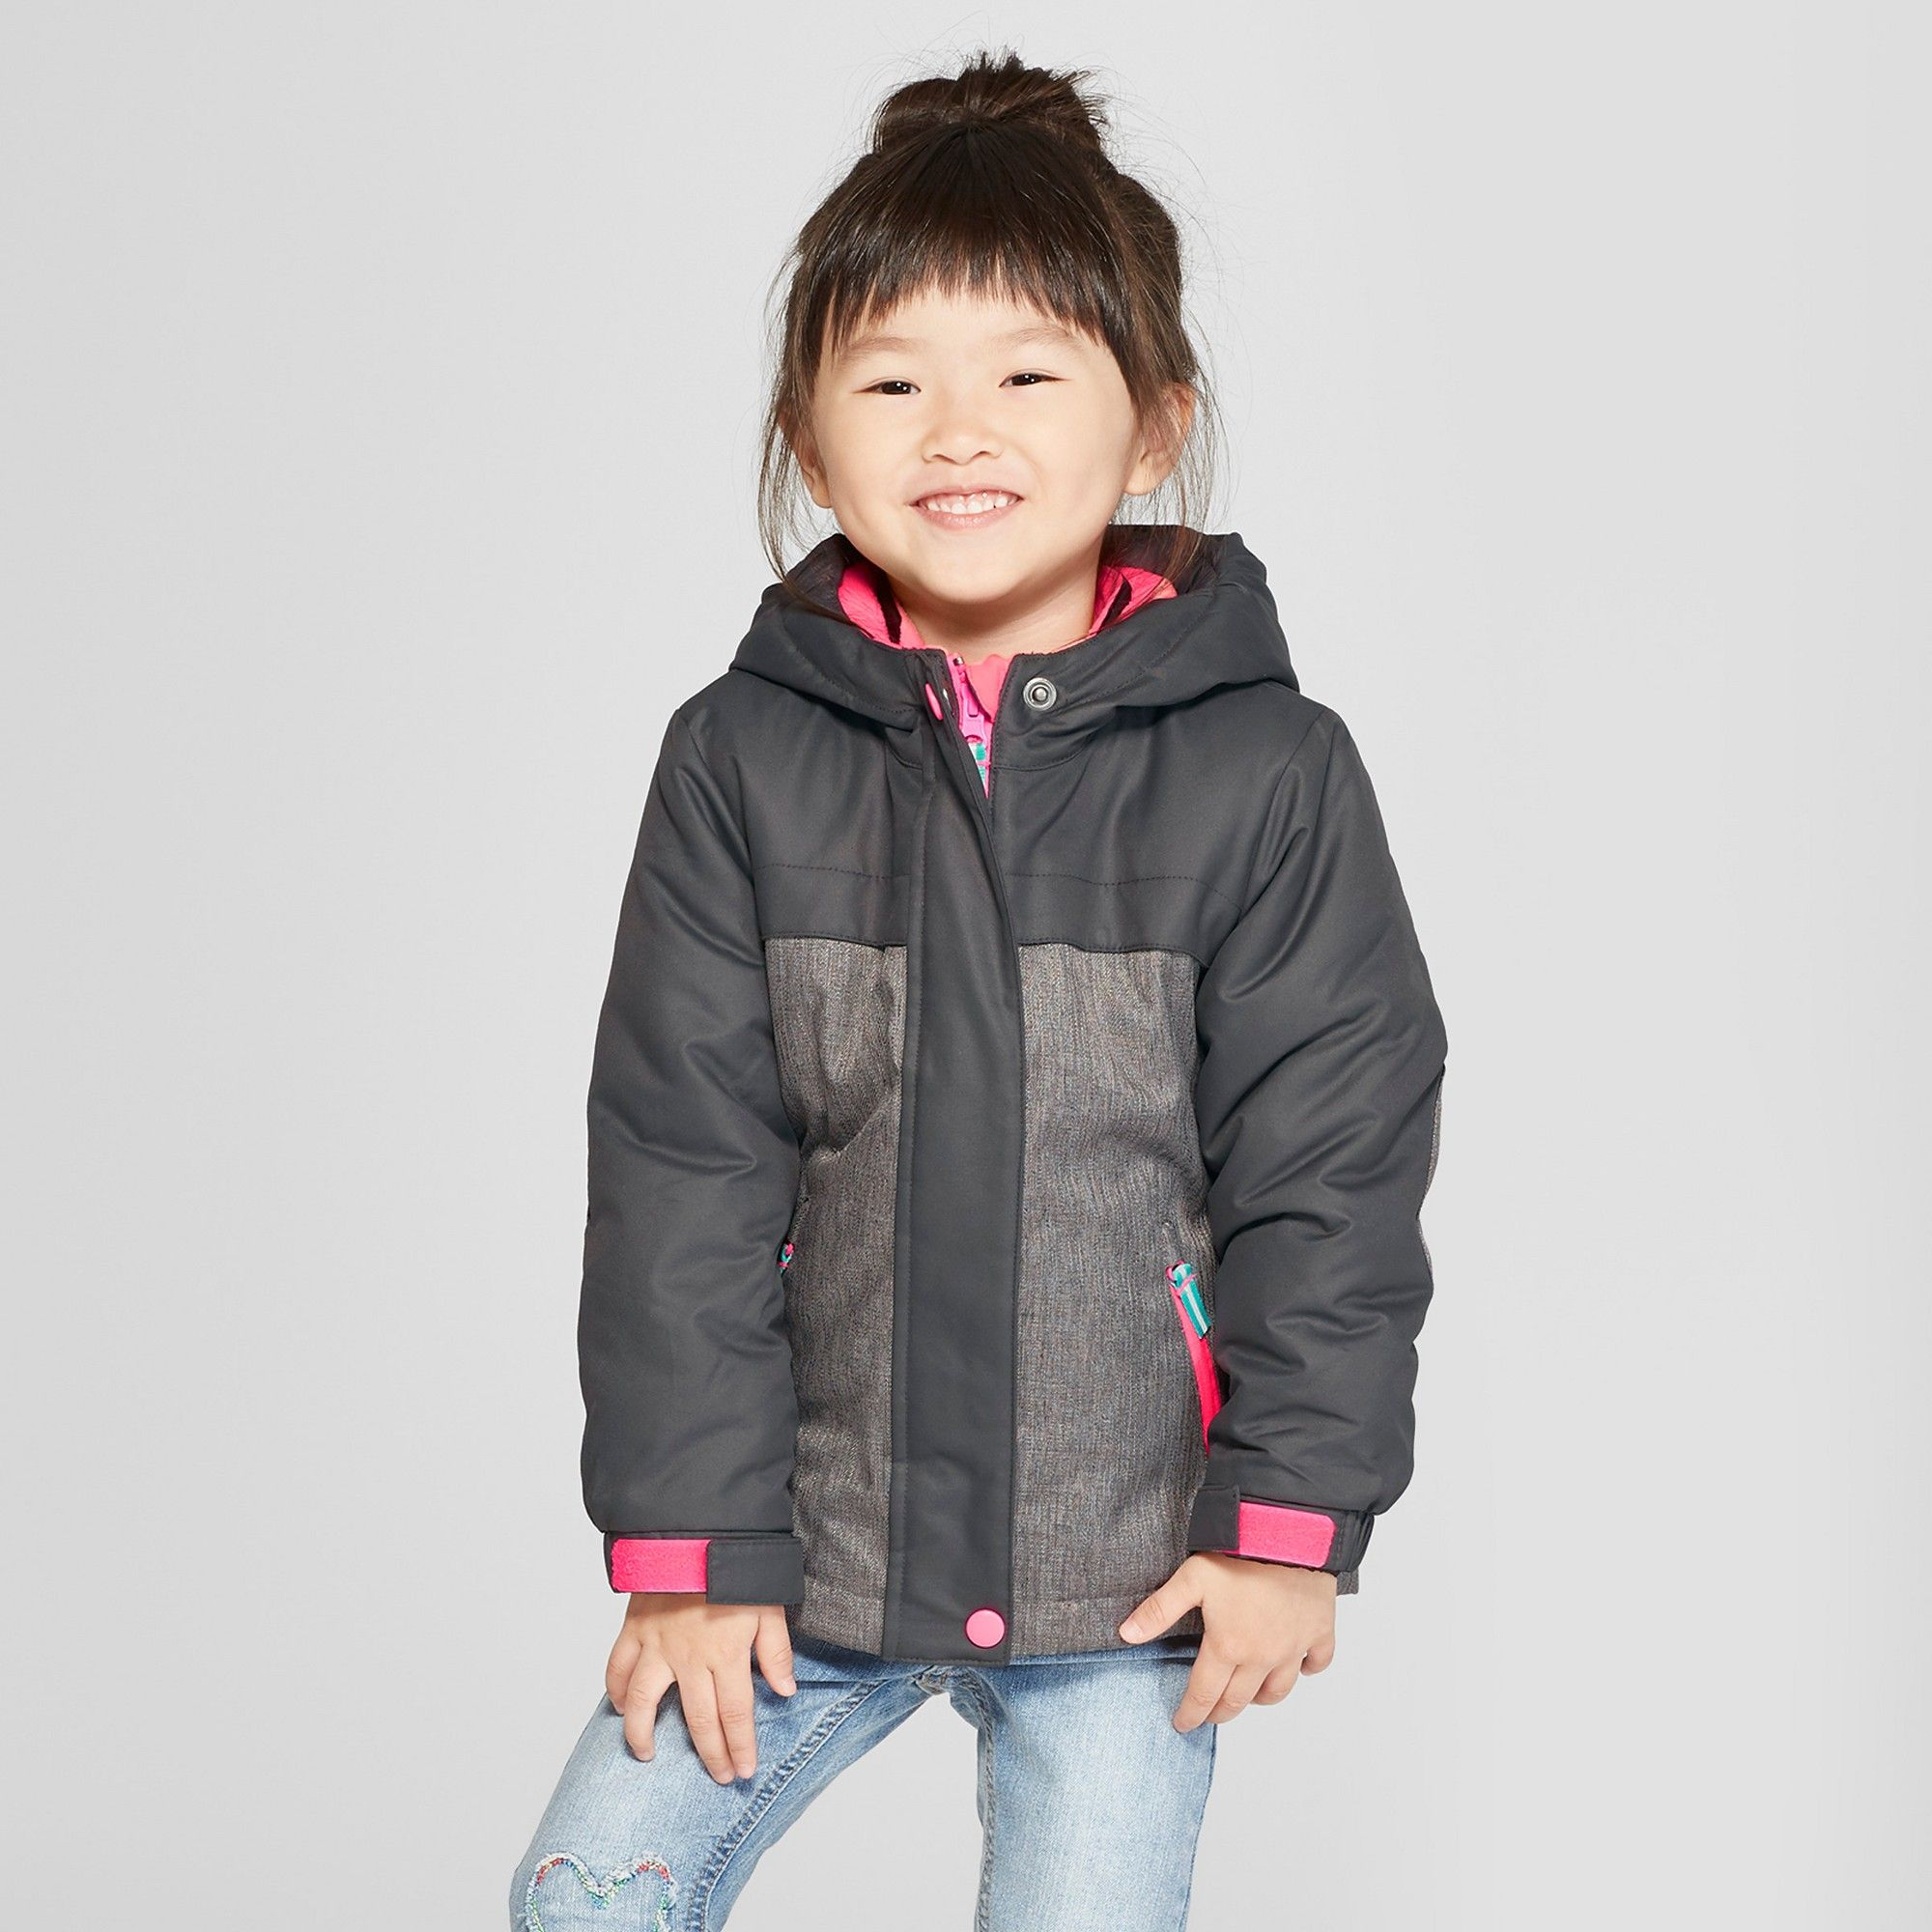 b9497a77061 Toddler Girls  Solid 3-in-1 Jacket - Cat   Jack Gray 6X